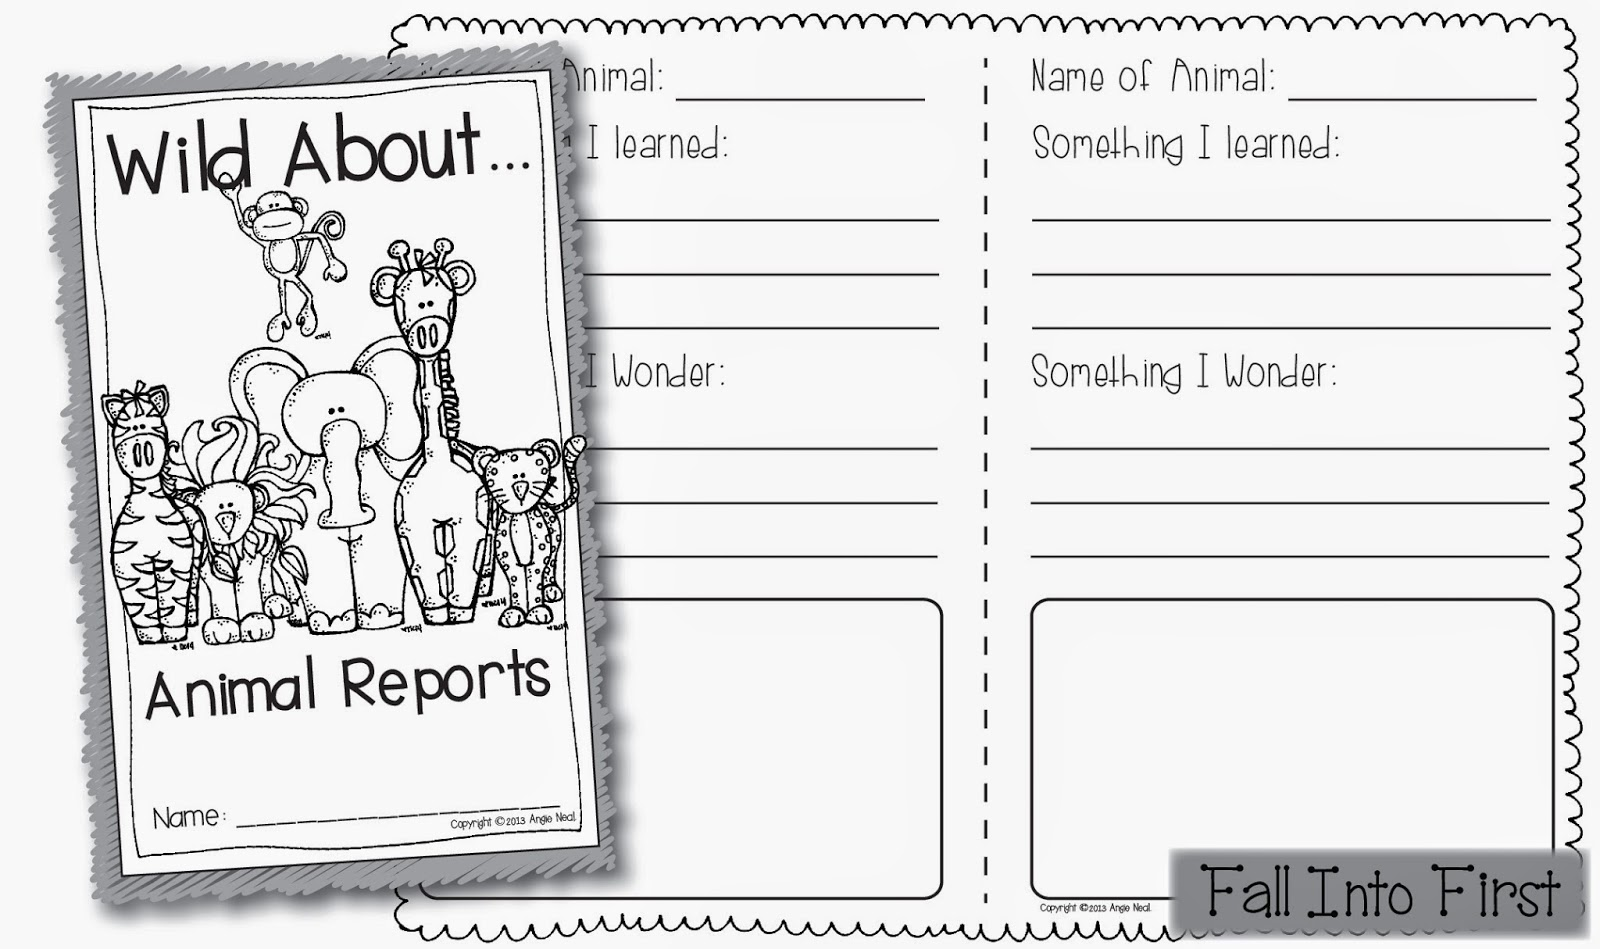 Fall Into First Zoopals Animal Reports